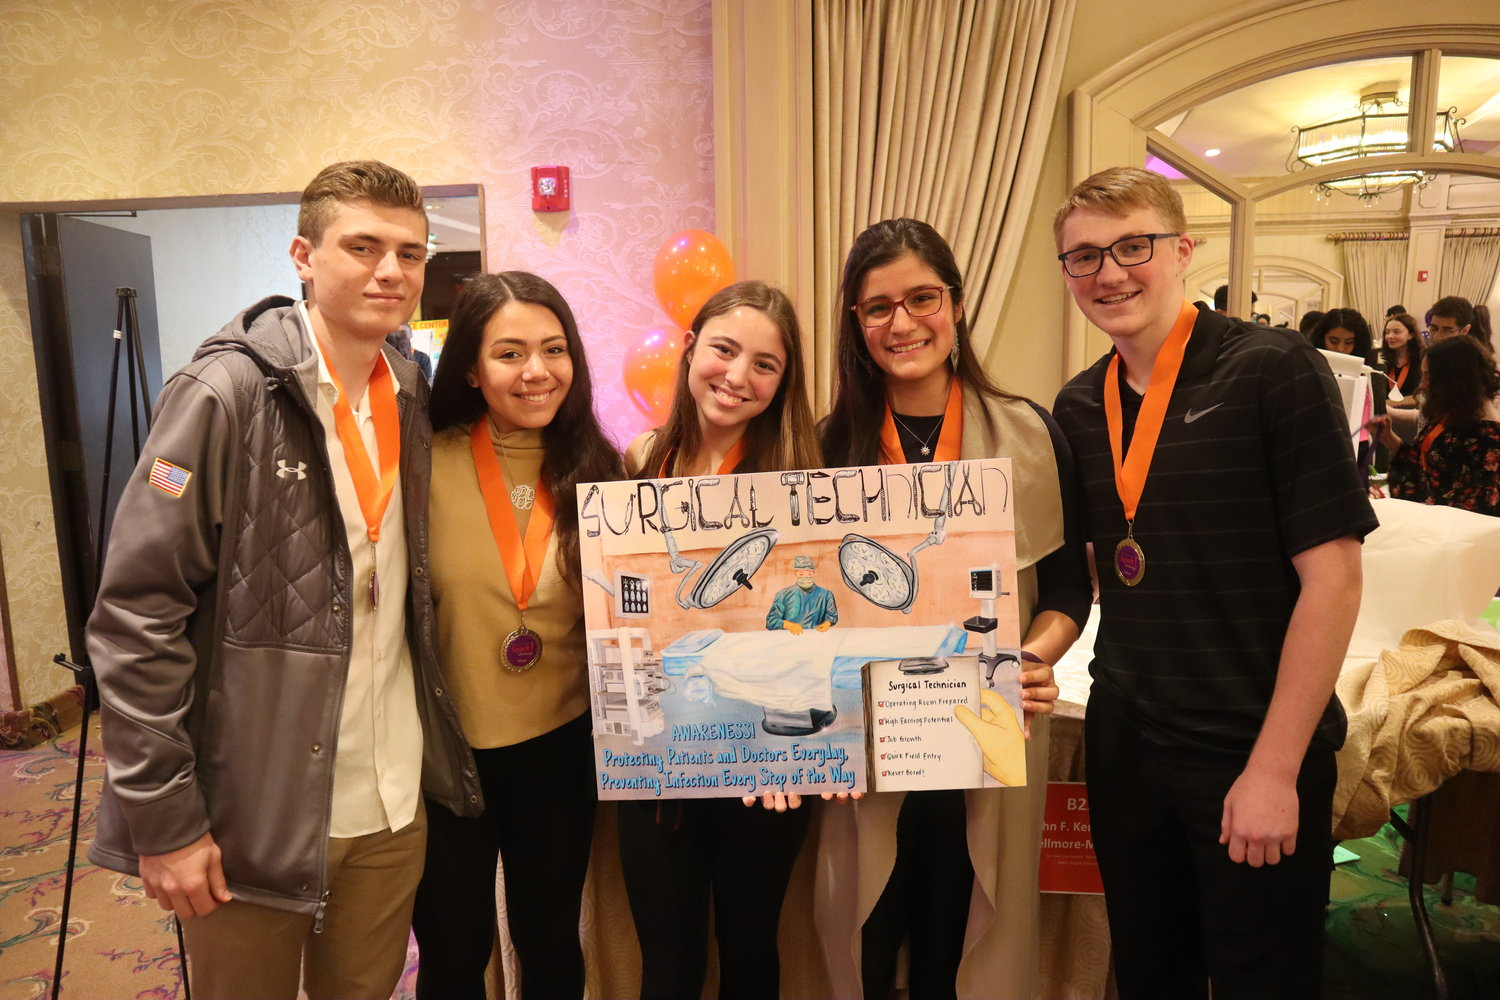 The John F. Kennedy Northwell SPARK! team that visited Glen Cove Hospital took first place in the poster competition: Jake Levine, far left, Randi Finkelstein, Ashley Camisso, Lauren Rhakimov and Pierce Infuso.